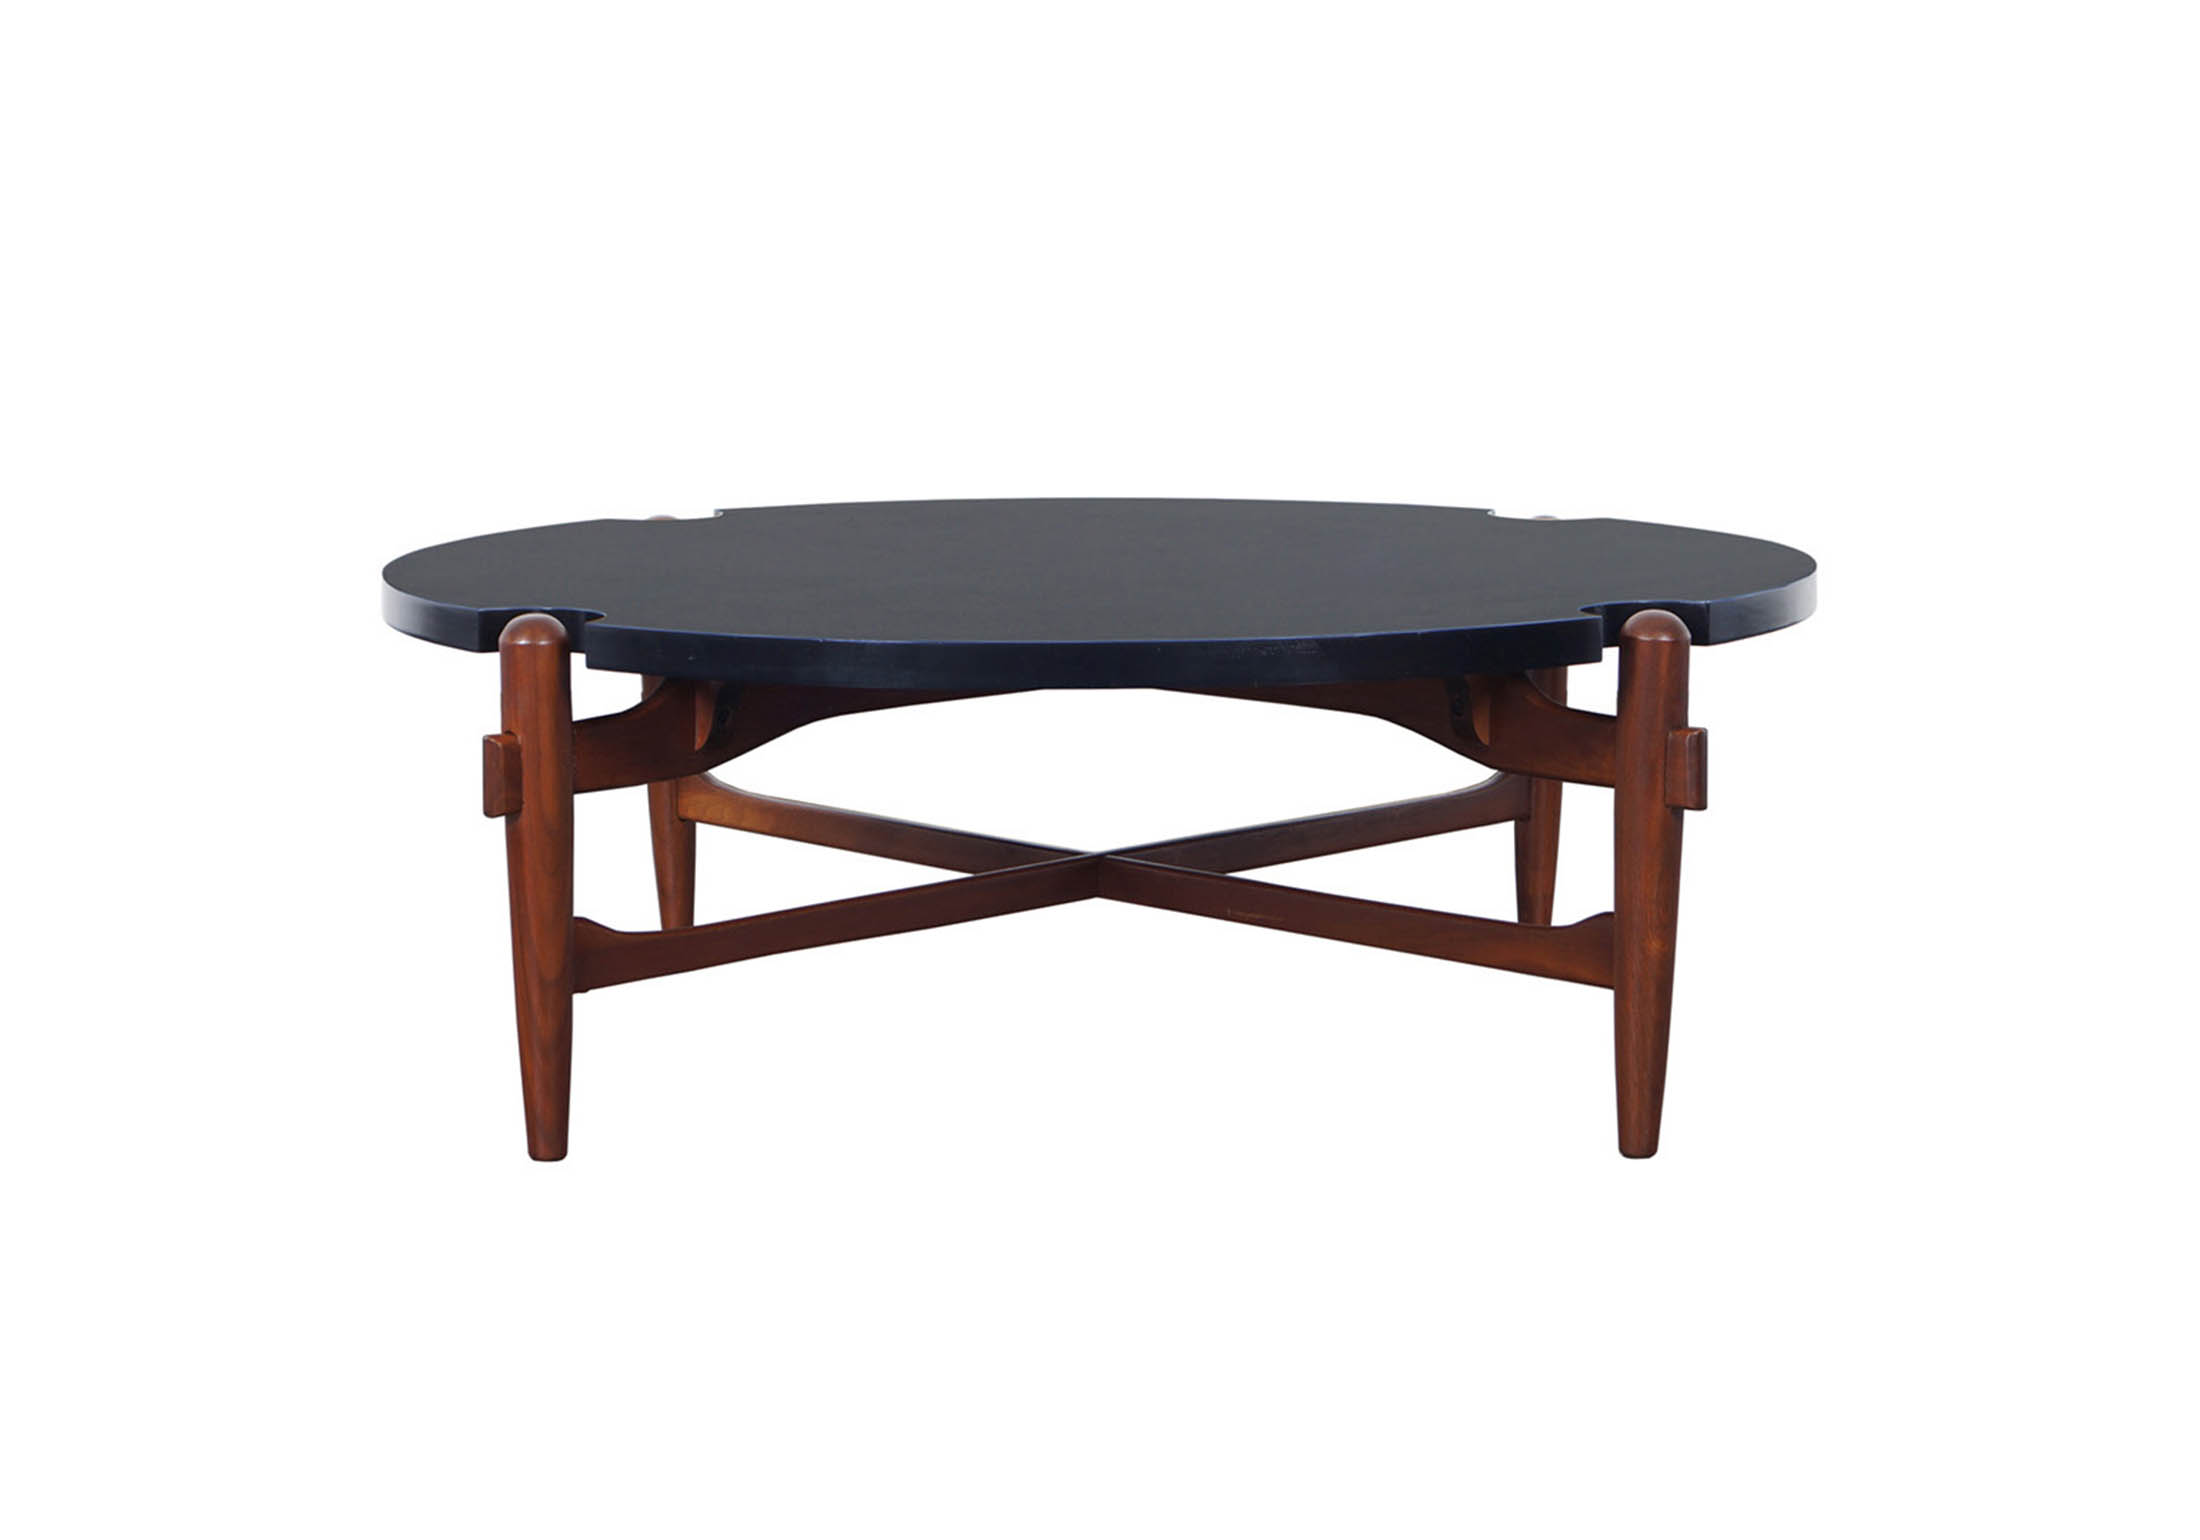 Vintage Coffee Table Attributed to Greta Grossman